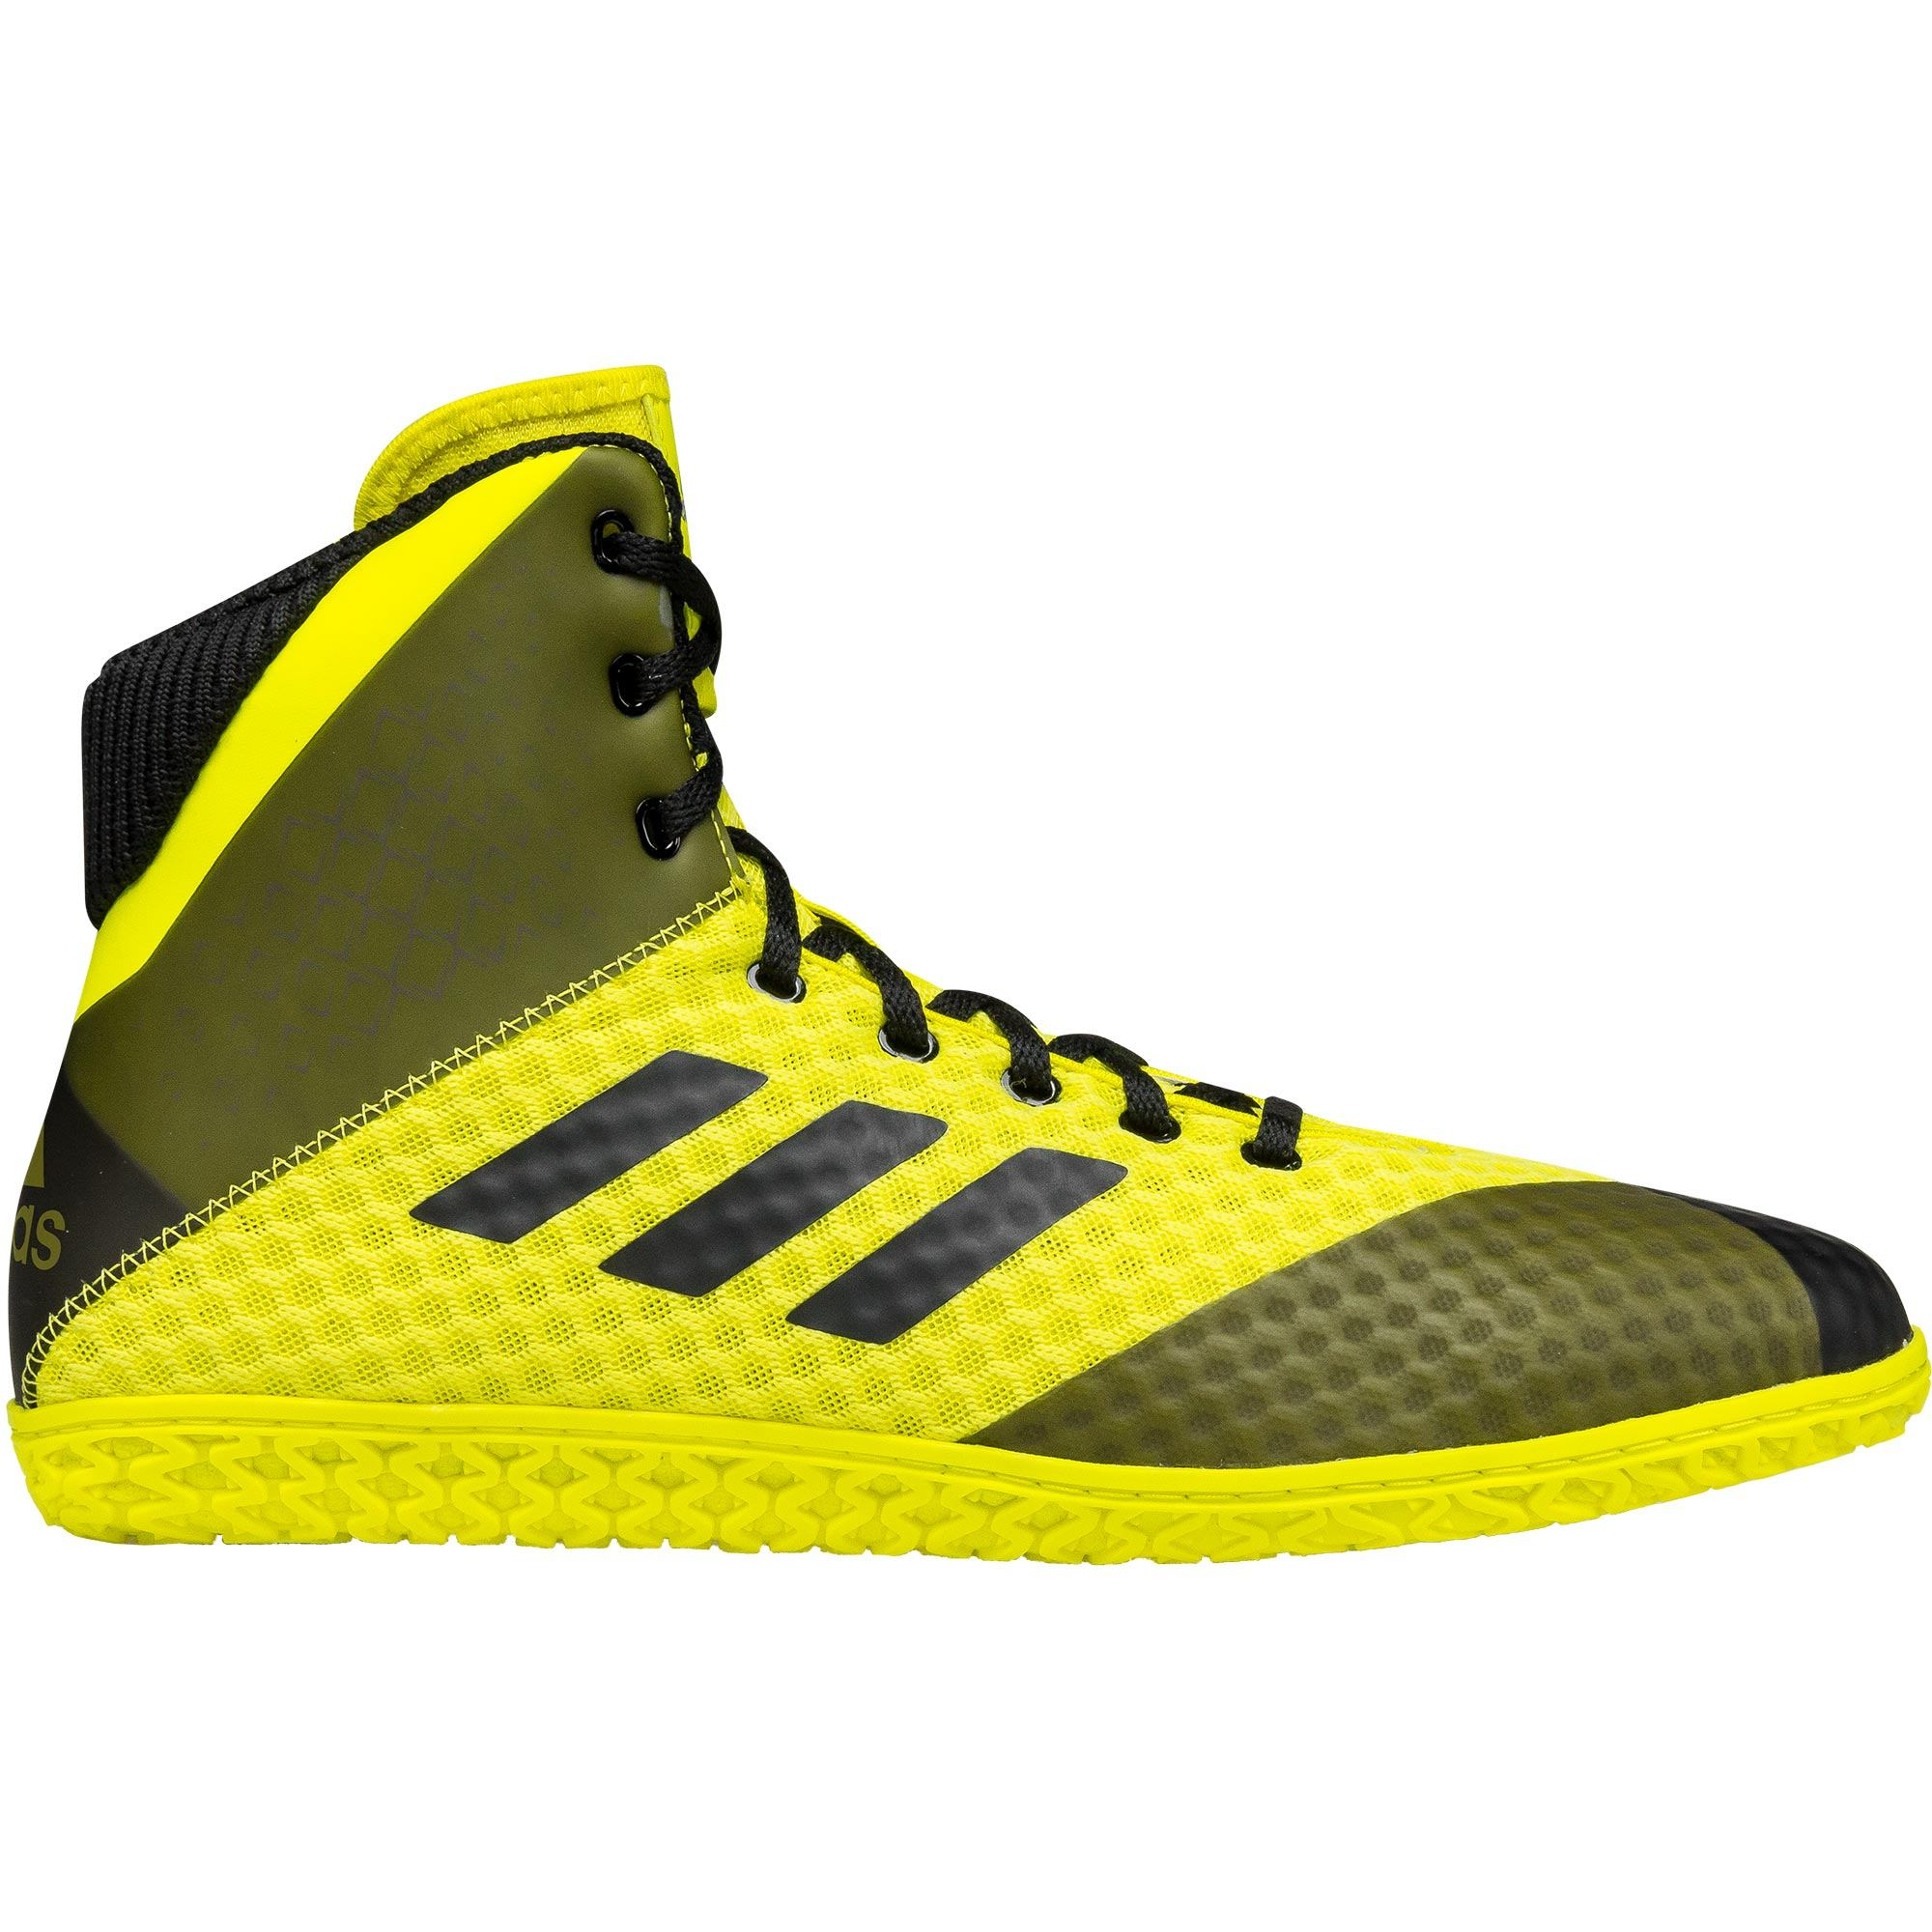 save off fa0a6 c93a1 ... Mat Wizard 4 Yellow Black frontAdidas Mat Wizard 4 Yellow Black  backAdidas Mat Wizard 4 Yellow Black soleAdidas Mat Wizard 4 Yellow Black  top